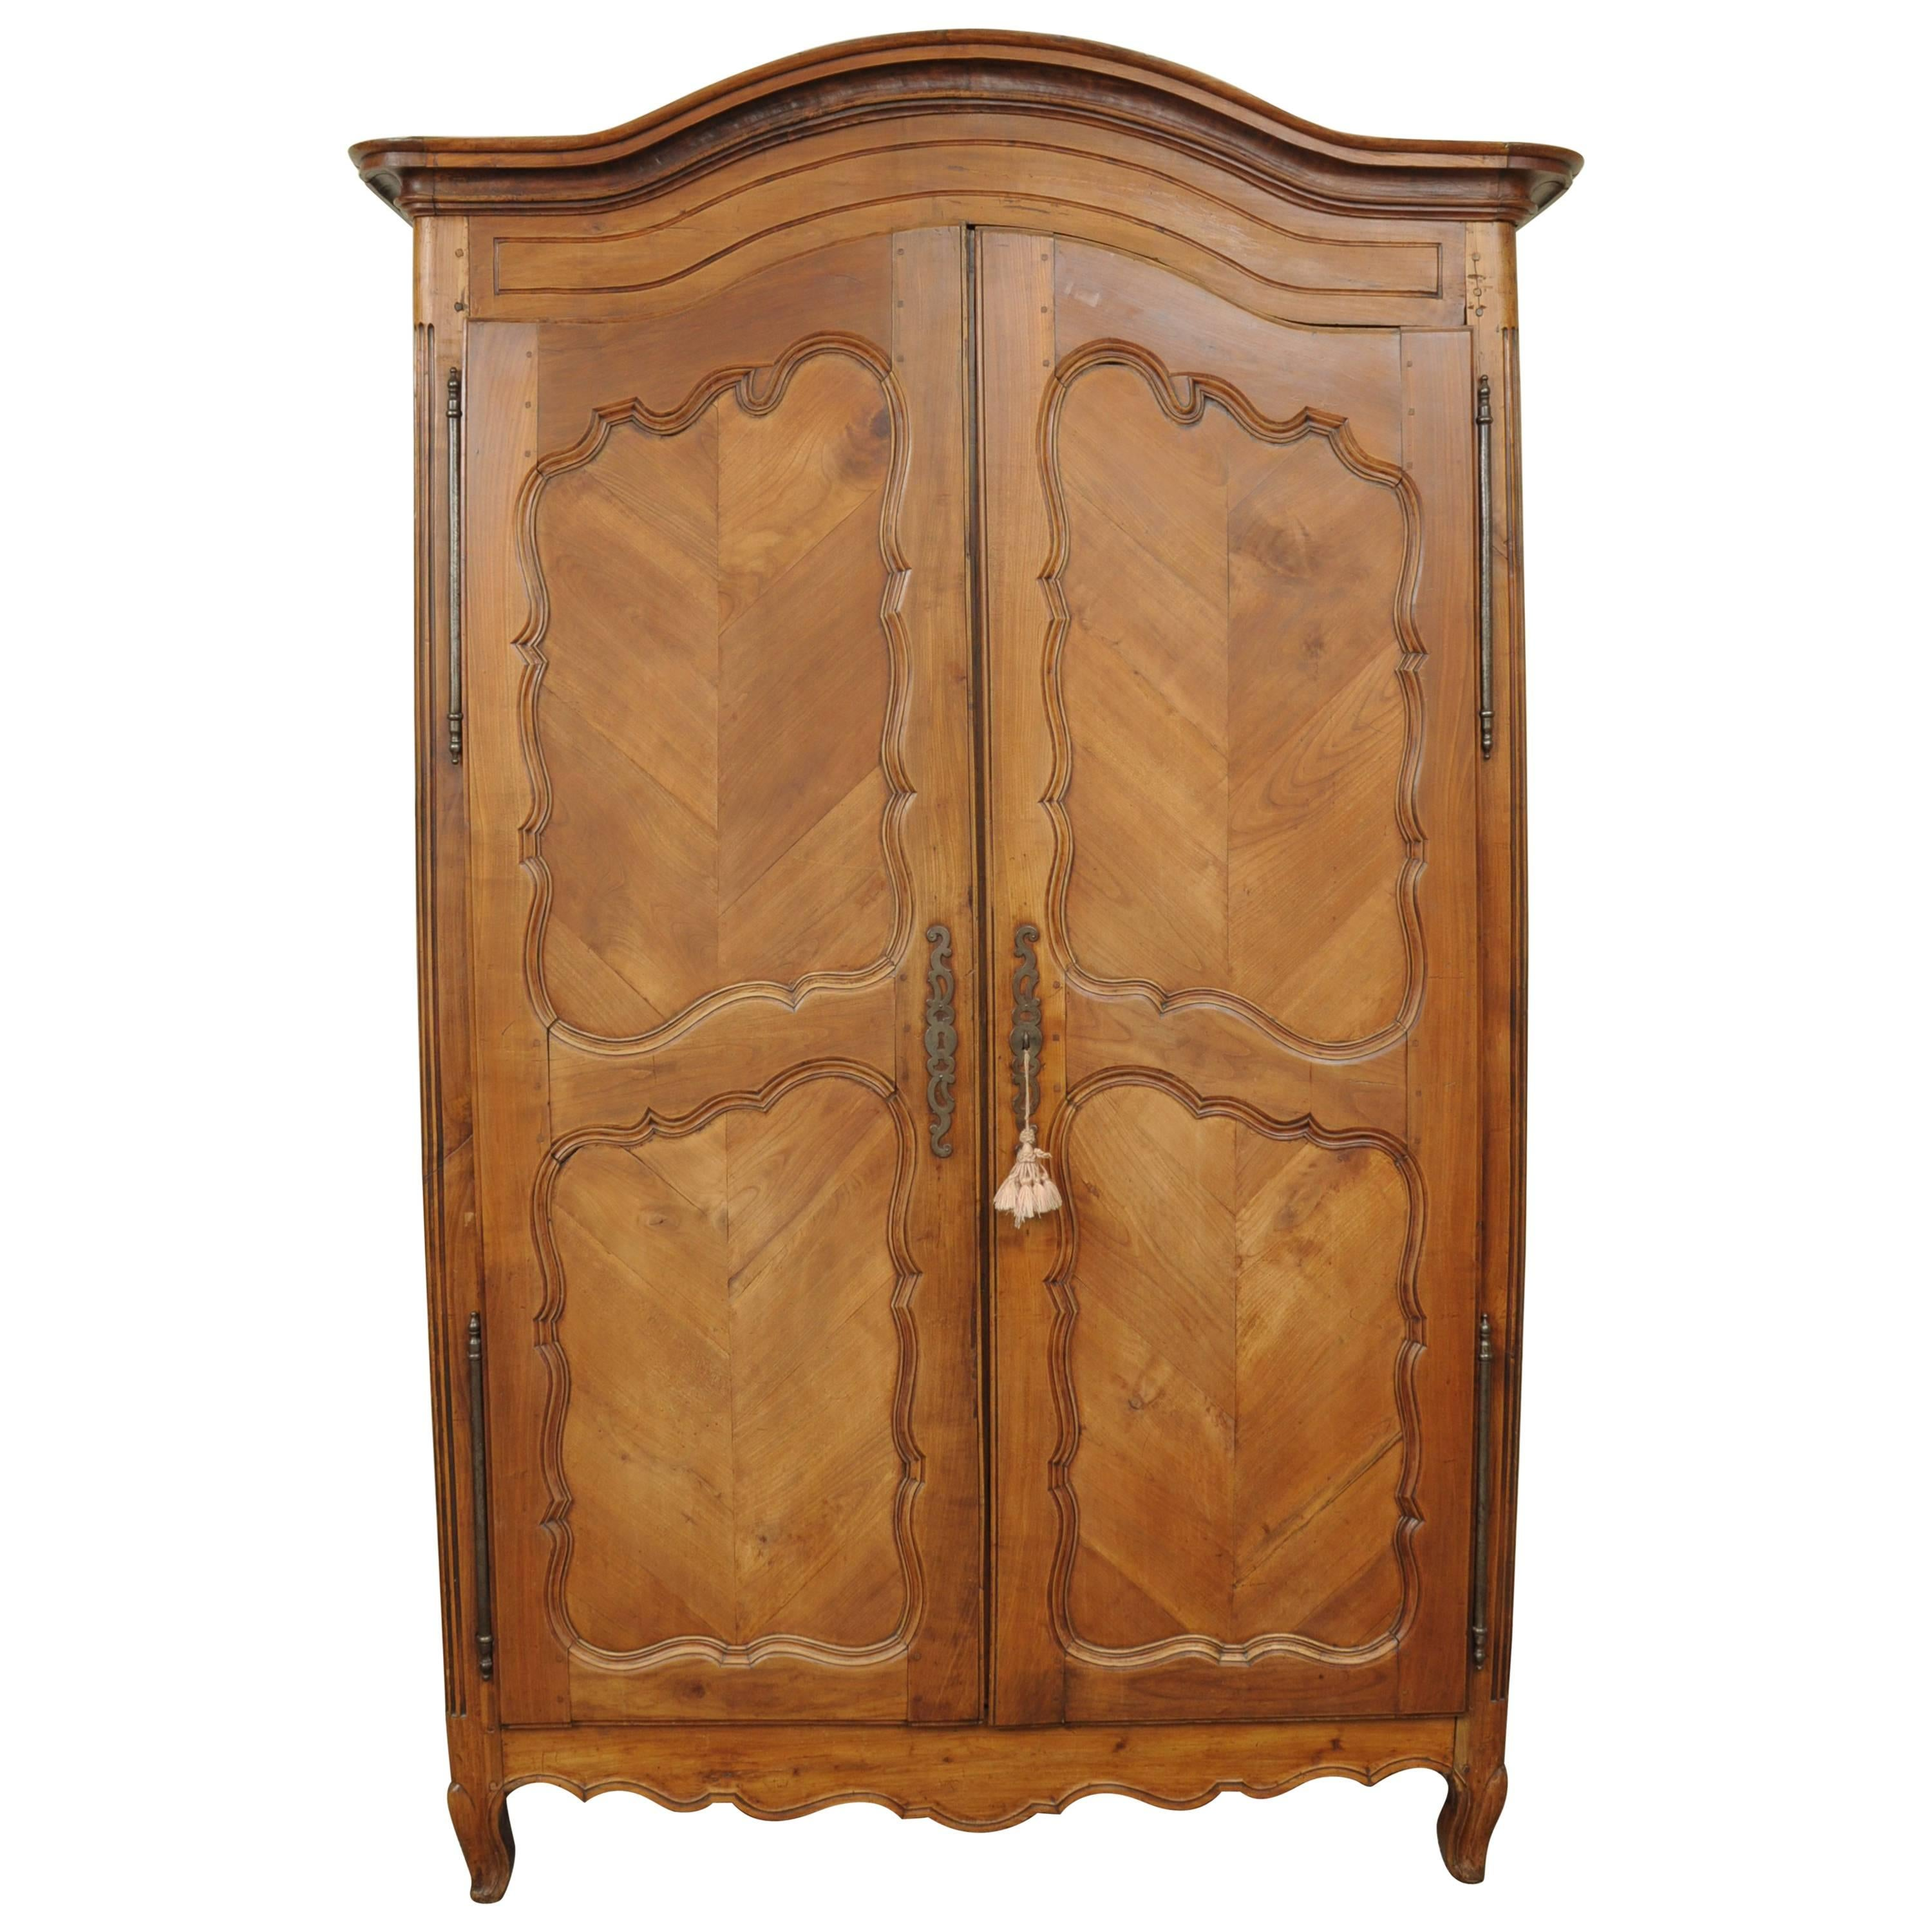 Large Country French Louis Xv Style Wardrobe Cabinet Walnut Bonnet Top Armoire For At 1stdibs